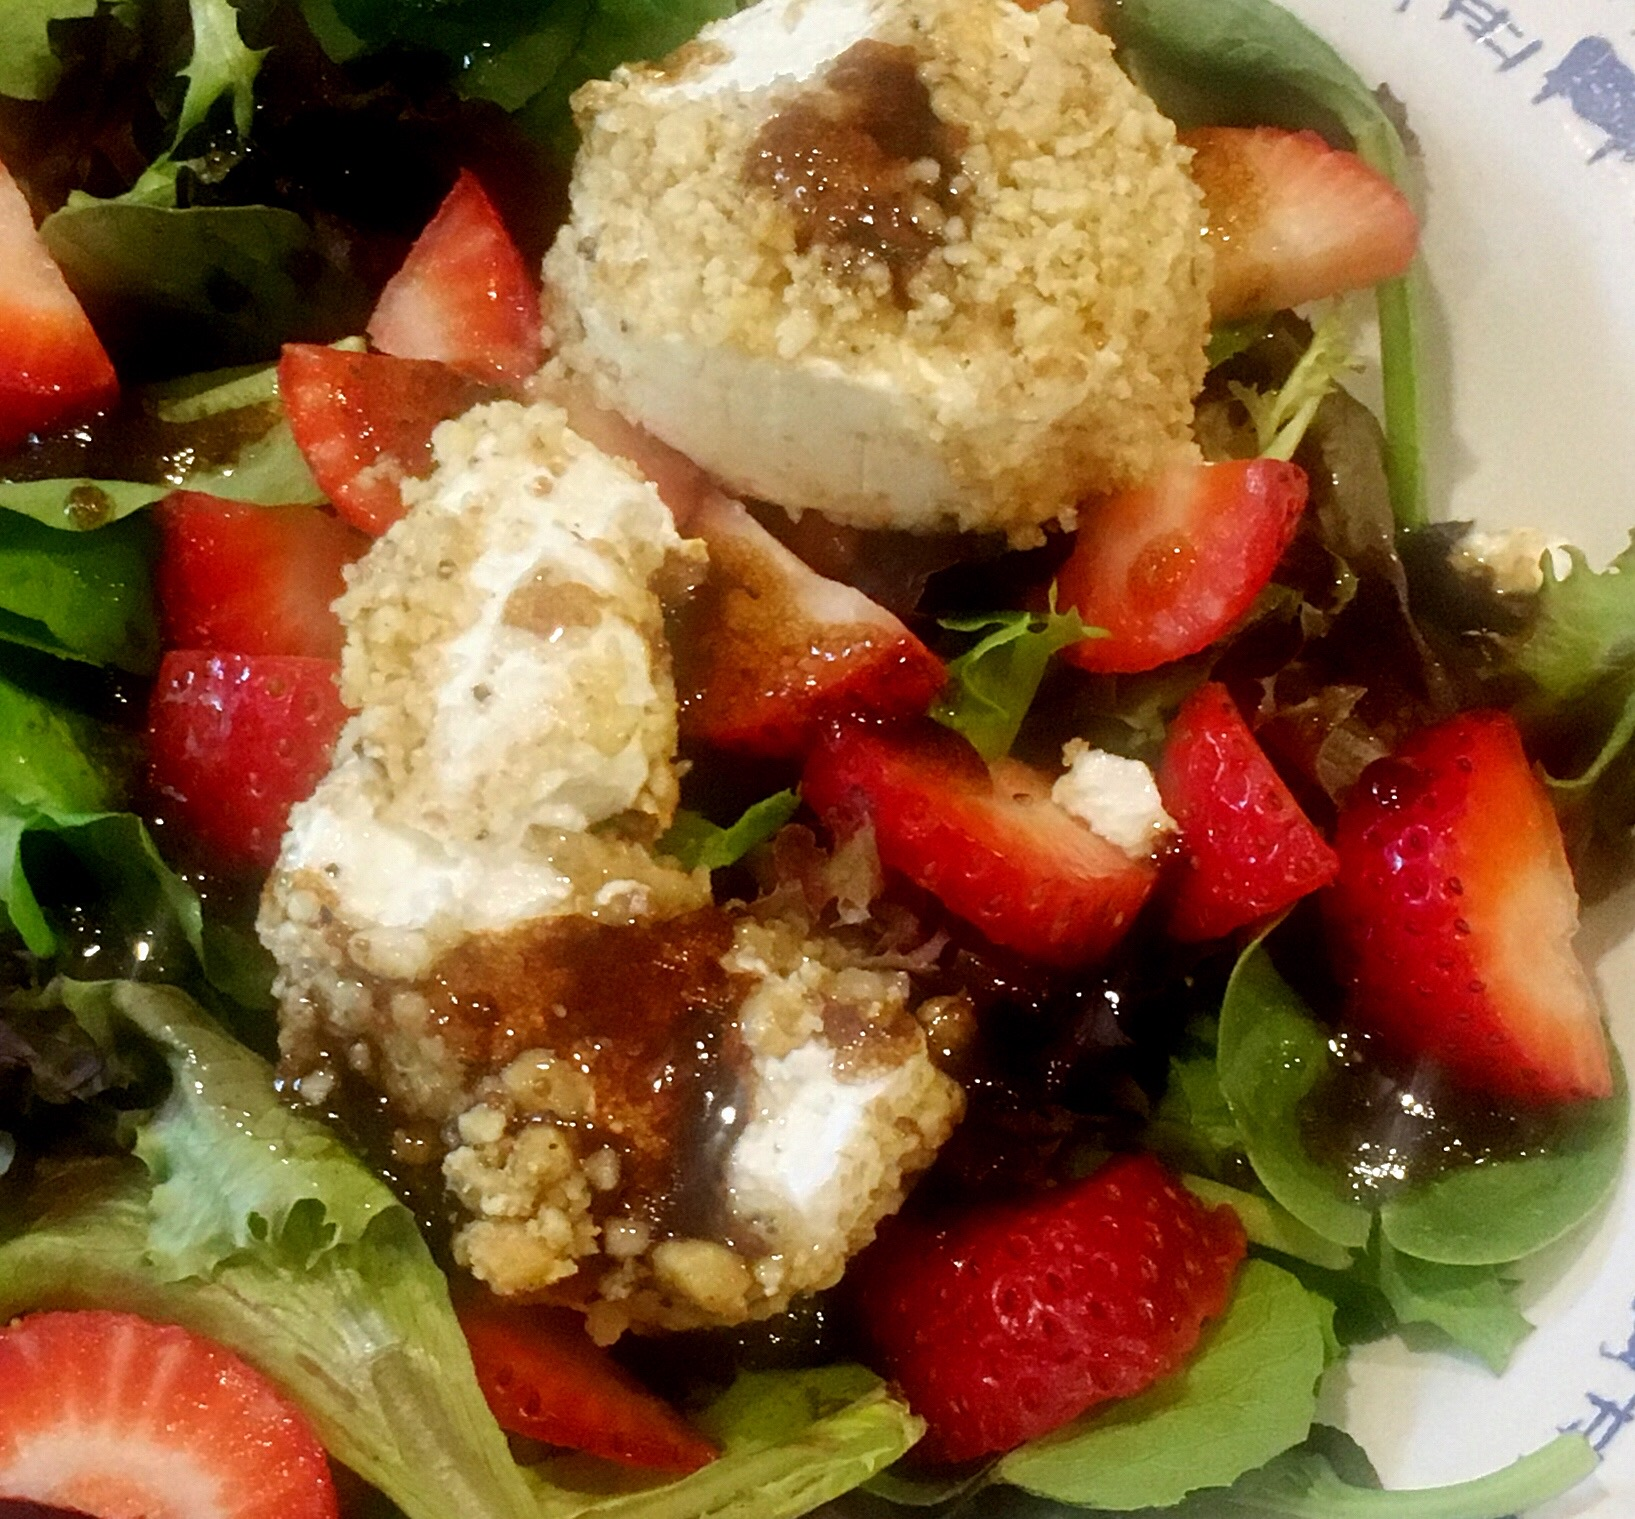 Goat Cheese salad with berries and balsamic vinegar